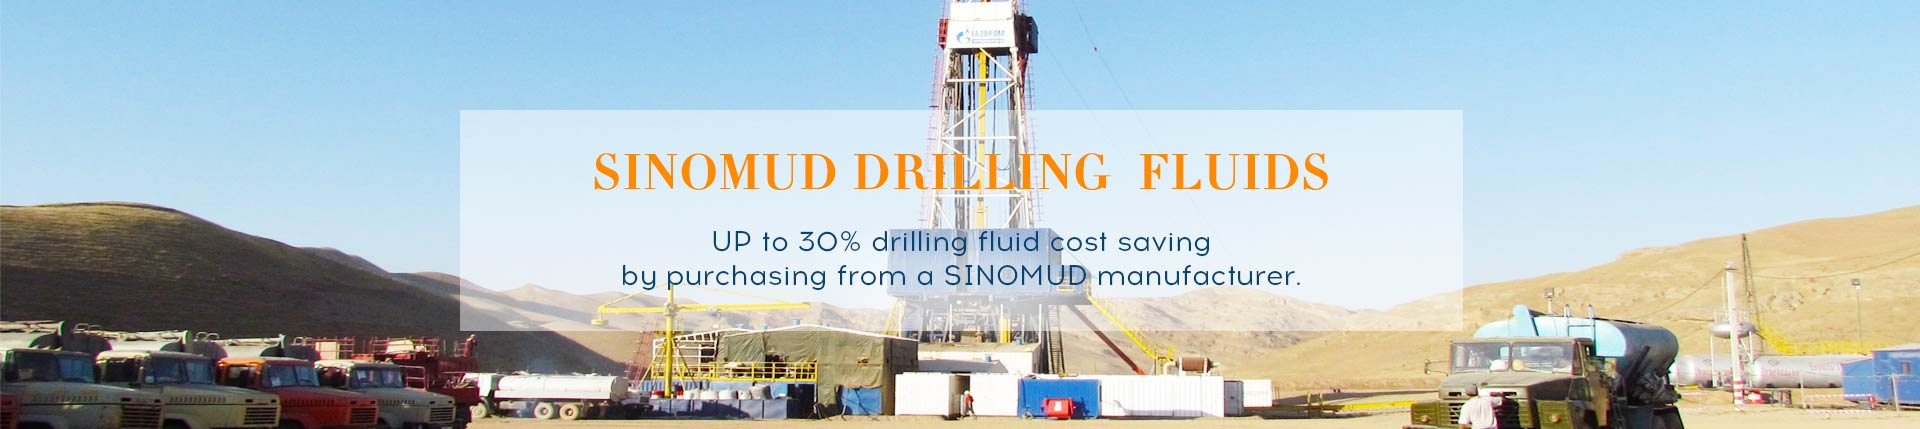 sinomud drilling exploration